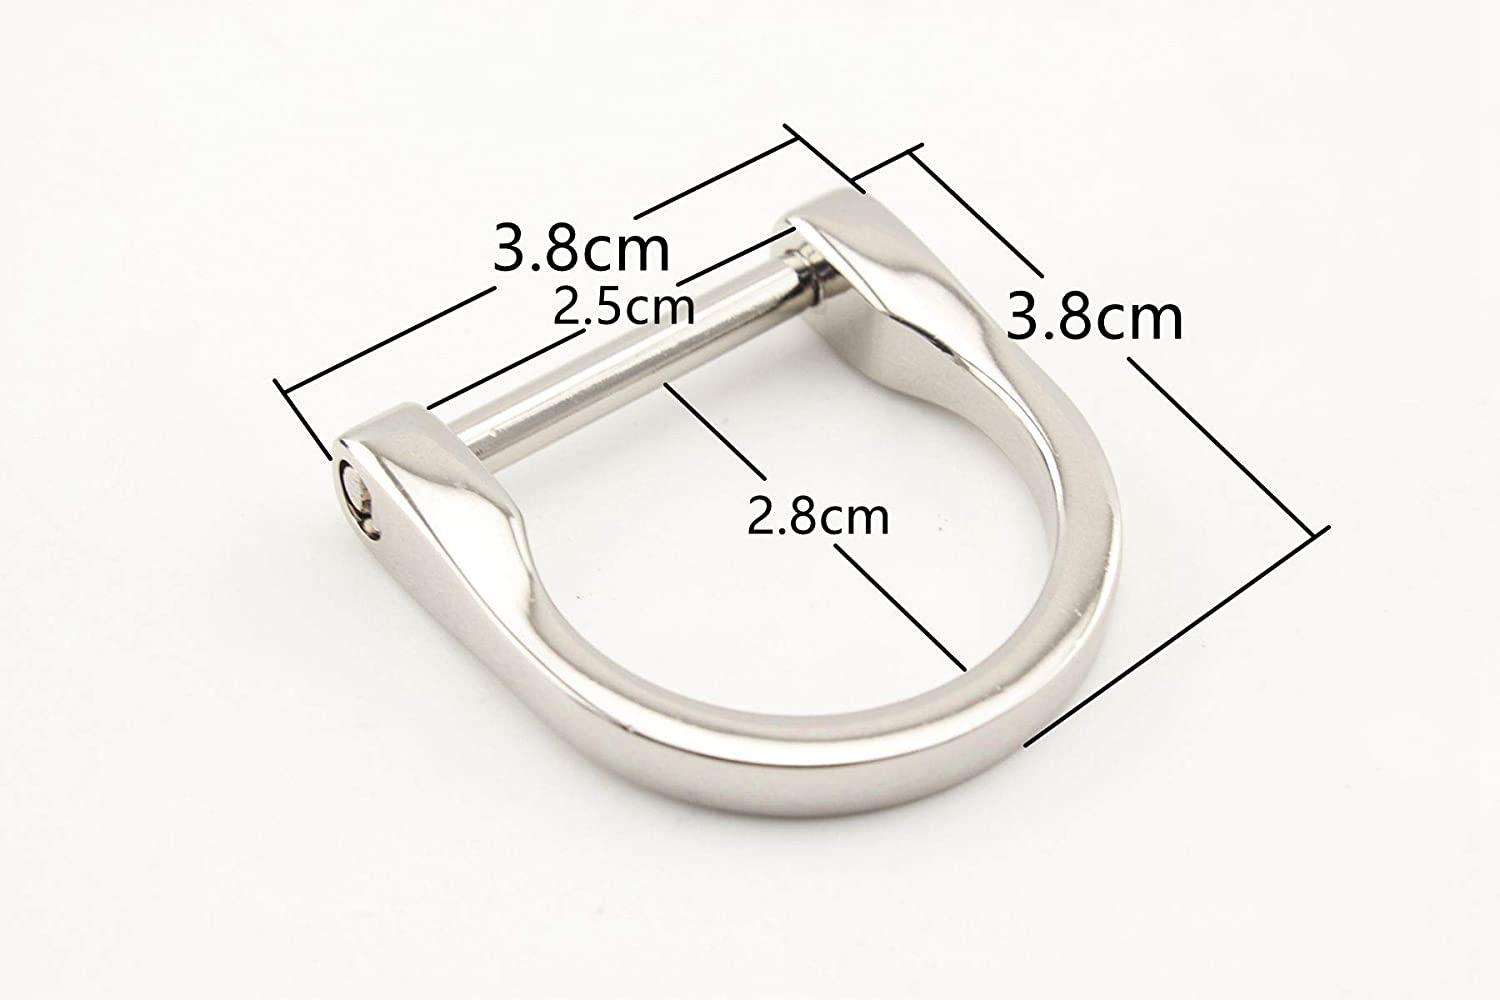 Nickel, 1 inch / 25mm 4 Different Size zinc Alloy D Rings D-Ring with Screw,Buckles Dismountable Screw for Buckle Straps Bags Belt,Purse Making, Bag Making,Bag Replacement, 8 Pieces per lot D15